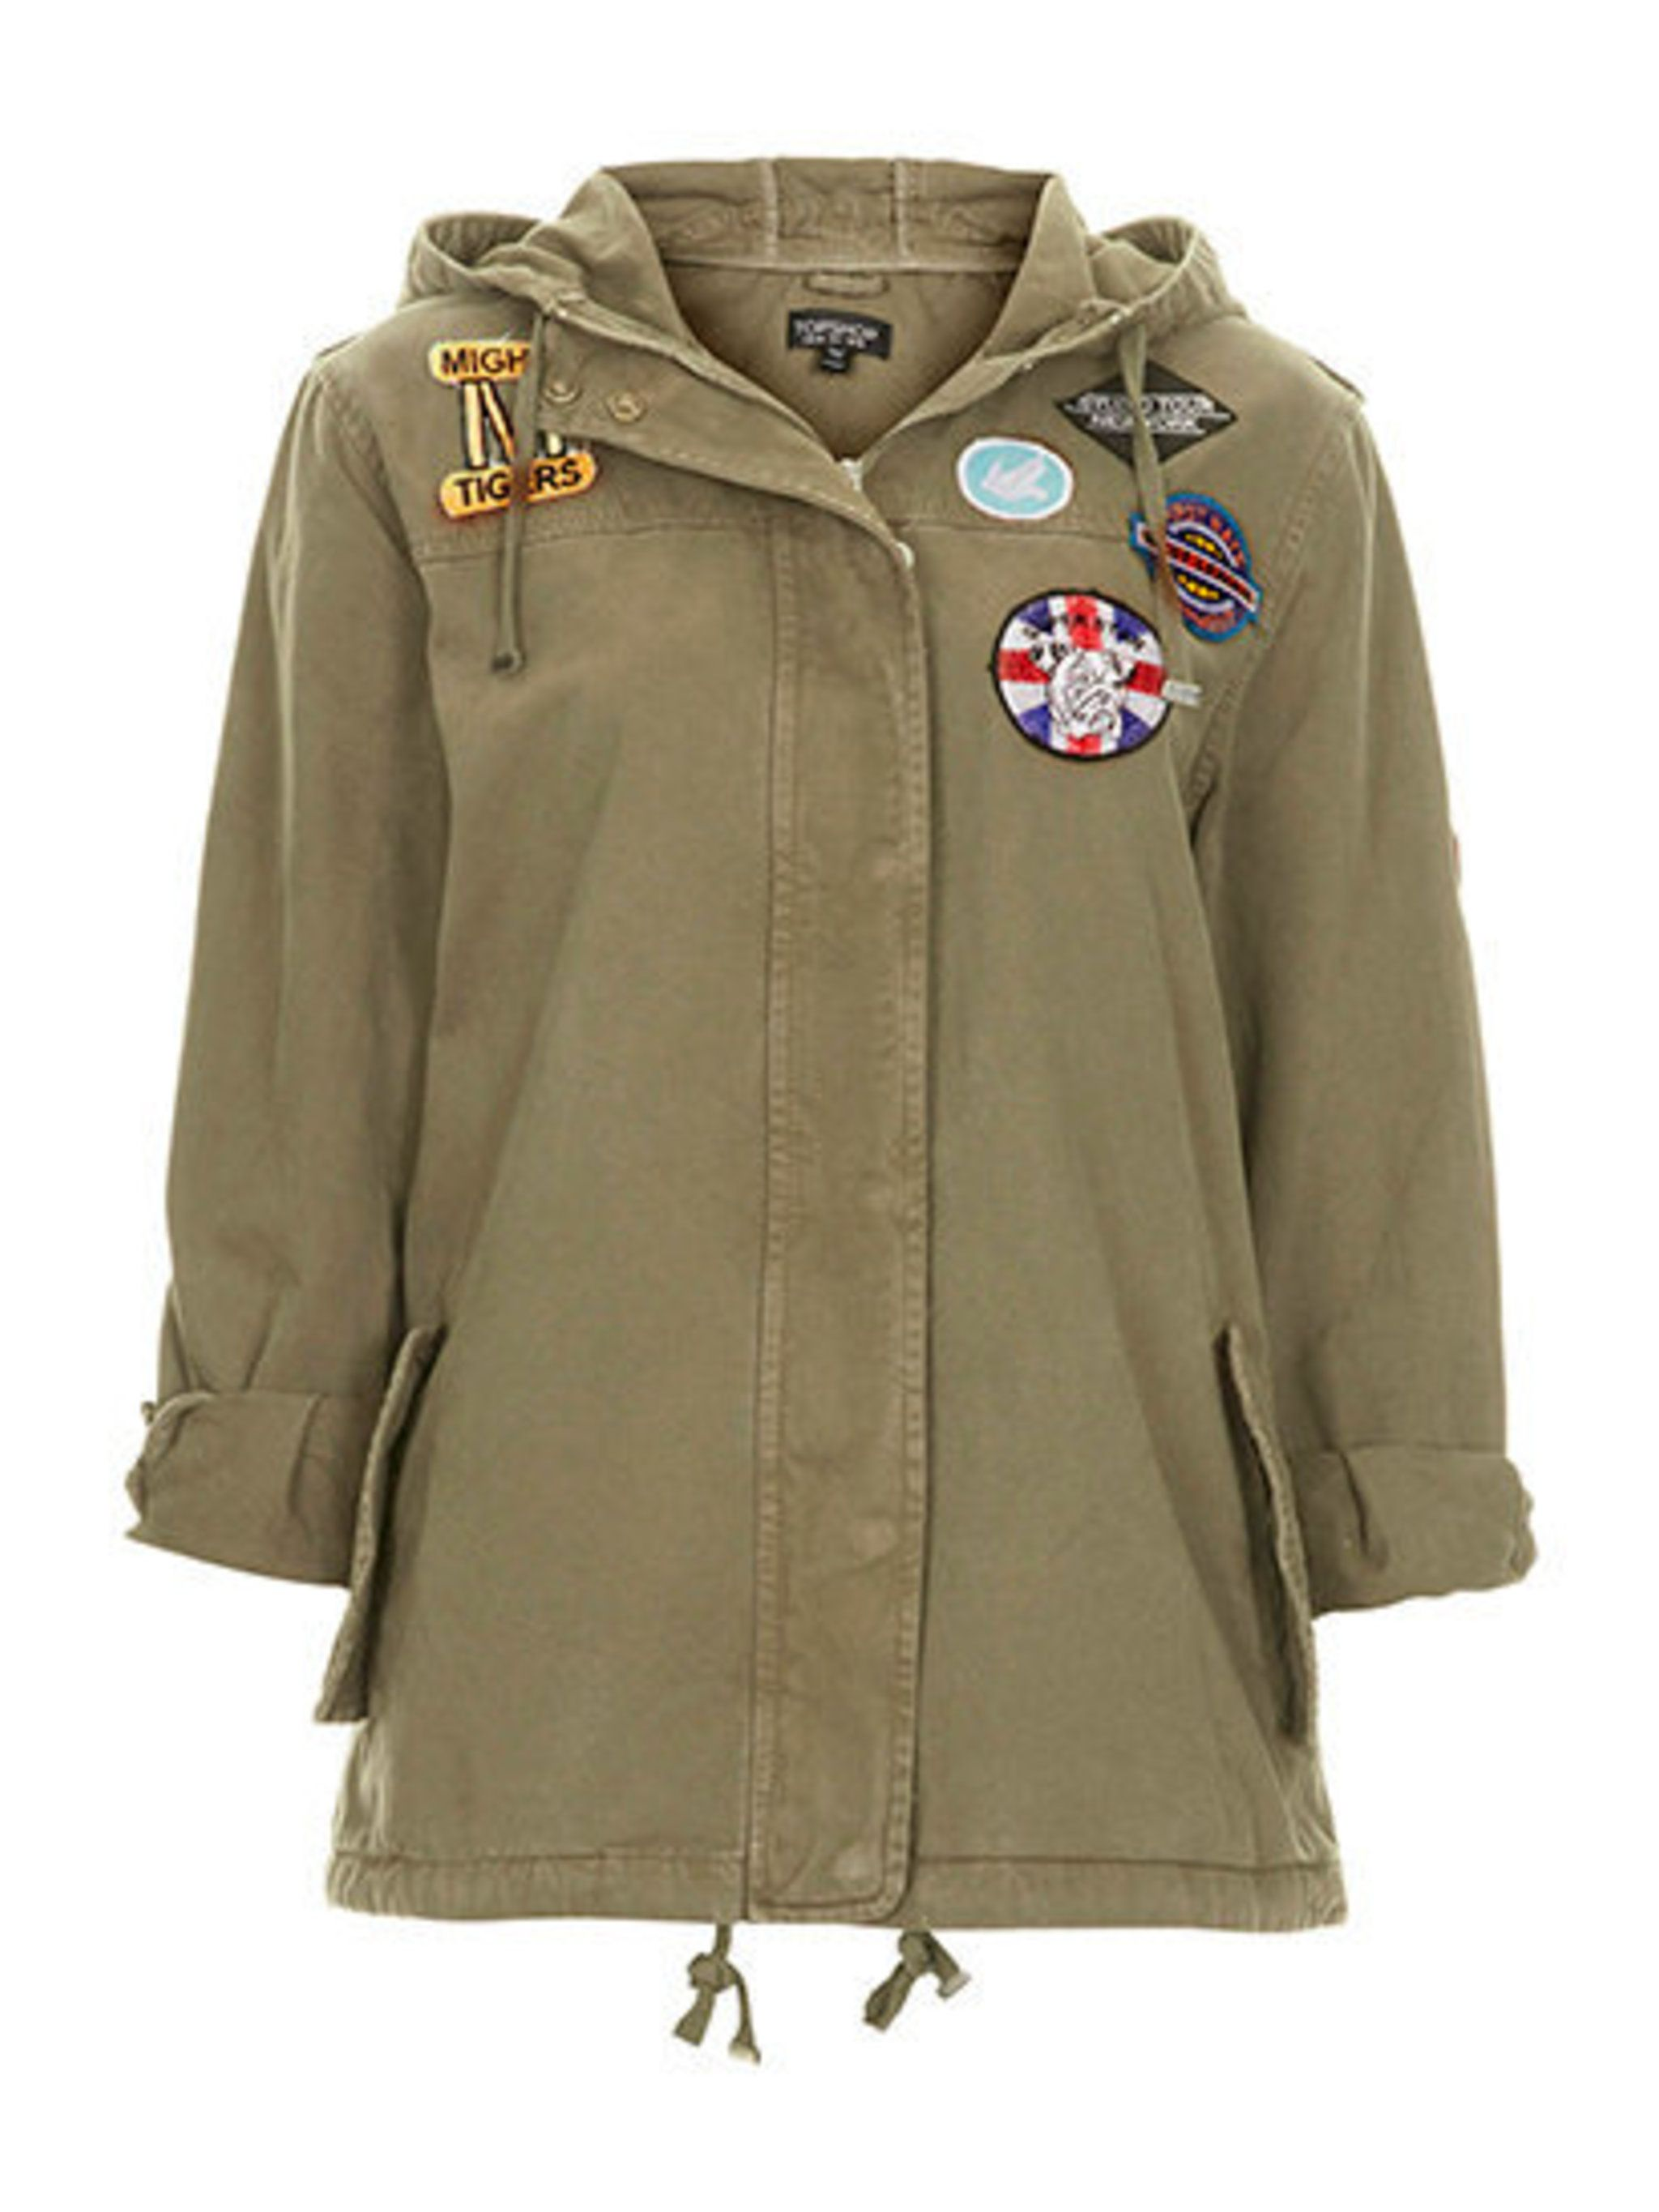 """<p>Lightweight layers are key for festivals, you never know when the English weather might dramatically change. Pack this <a href=""""http://www.topshop.com/en/tsuk/product/clothing-427/festival-1905528/badged-lightweight-short-parka-2779889?bi=1&ps=200"""""""